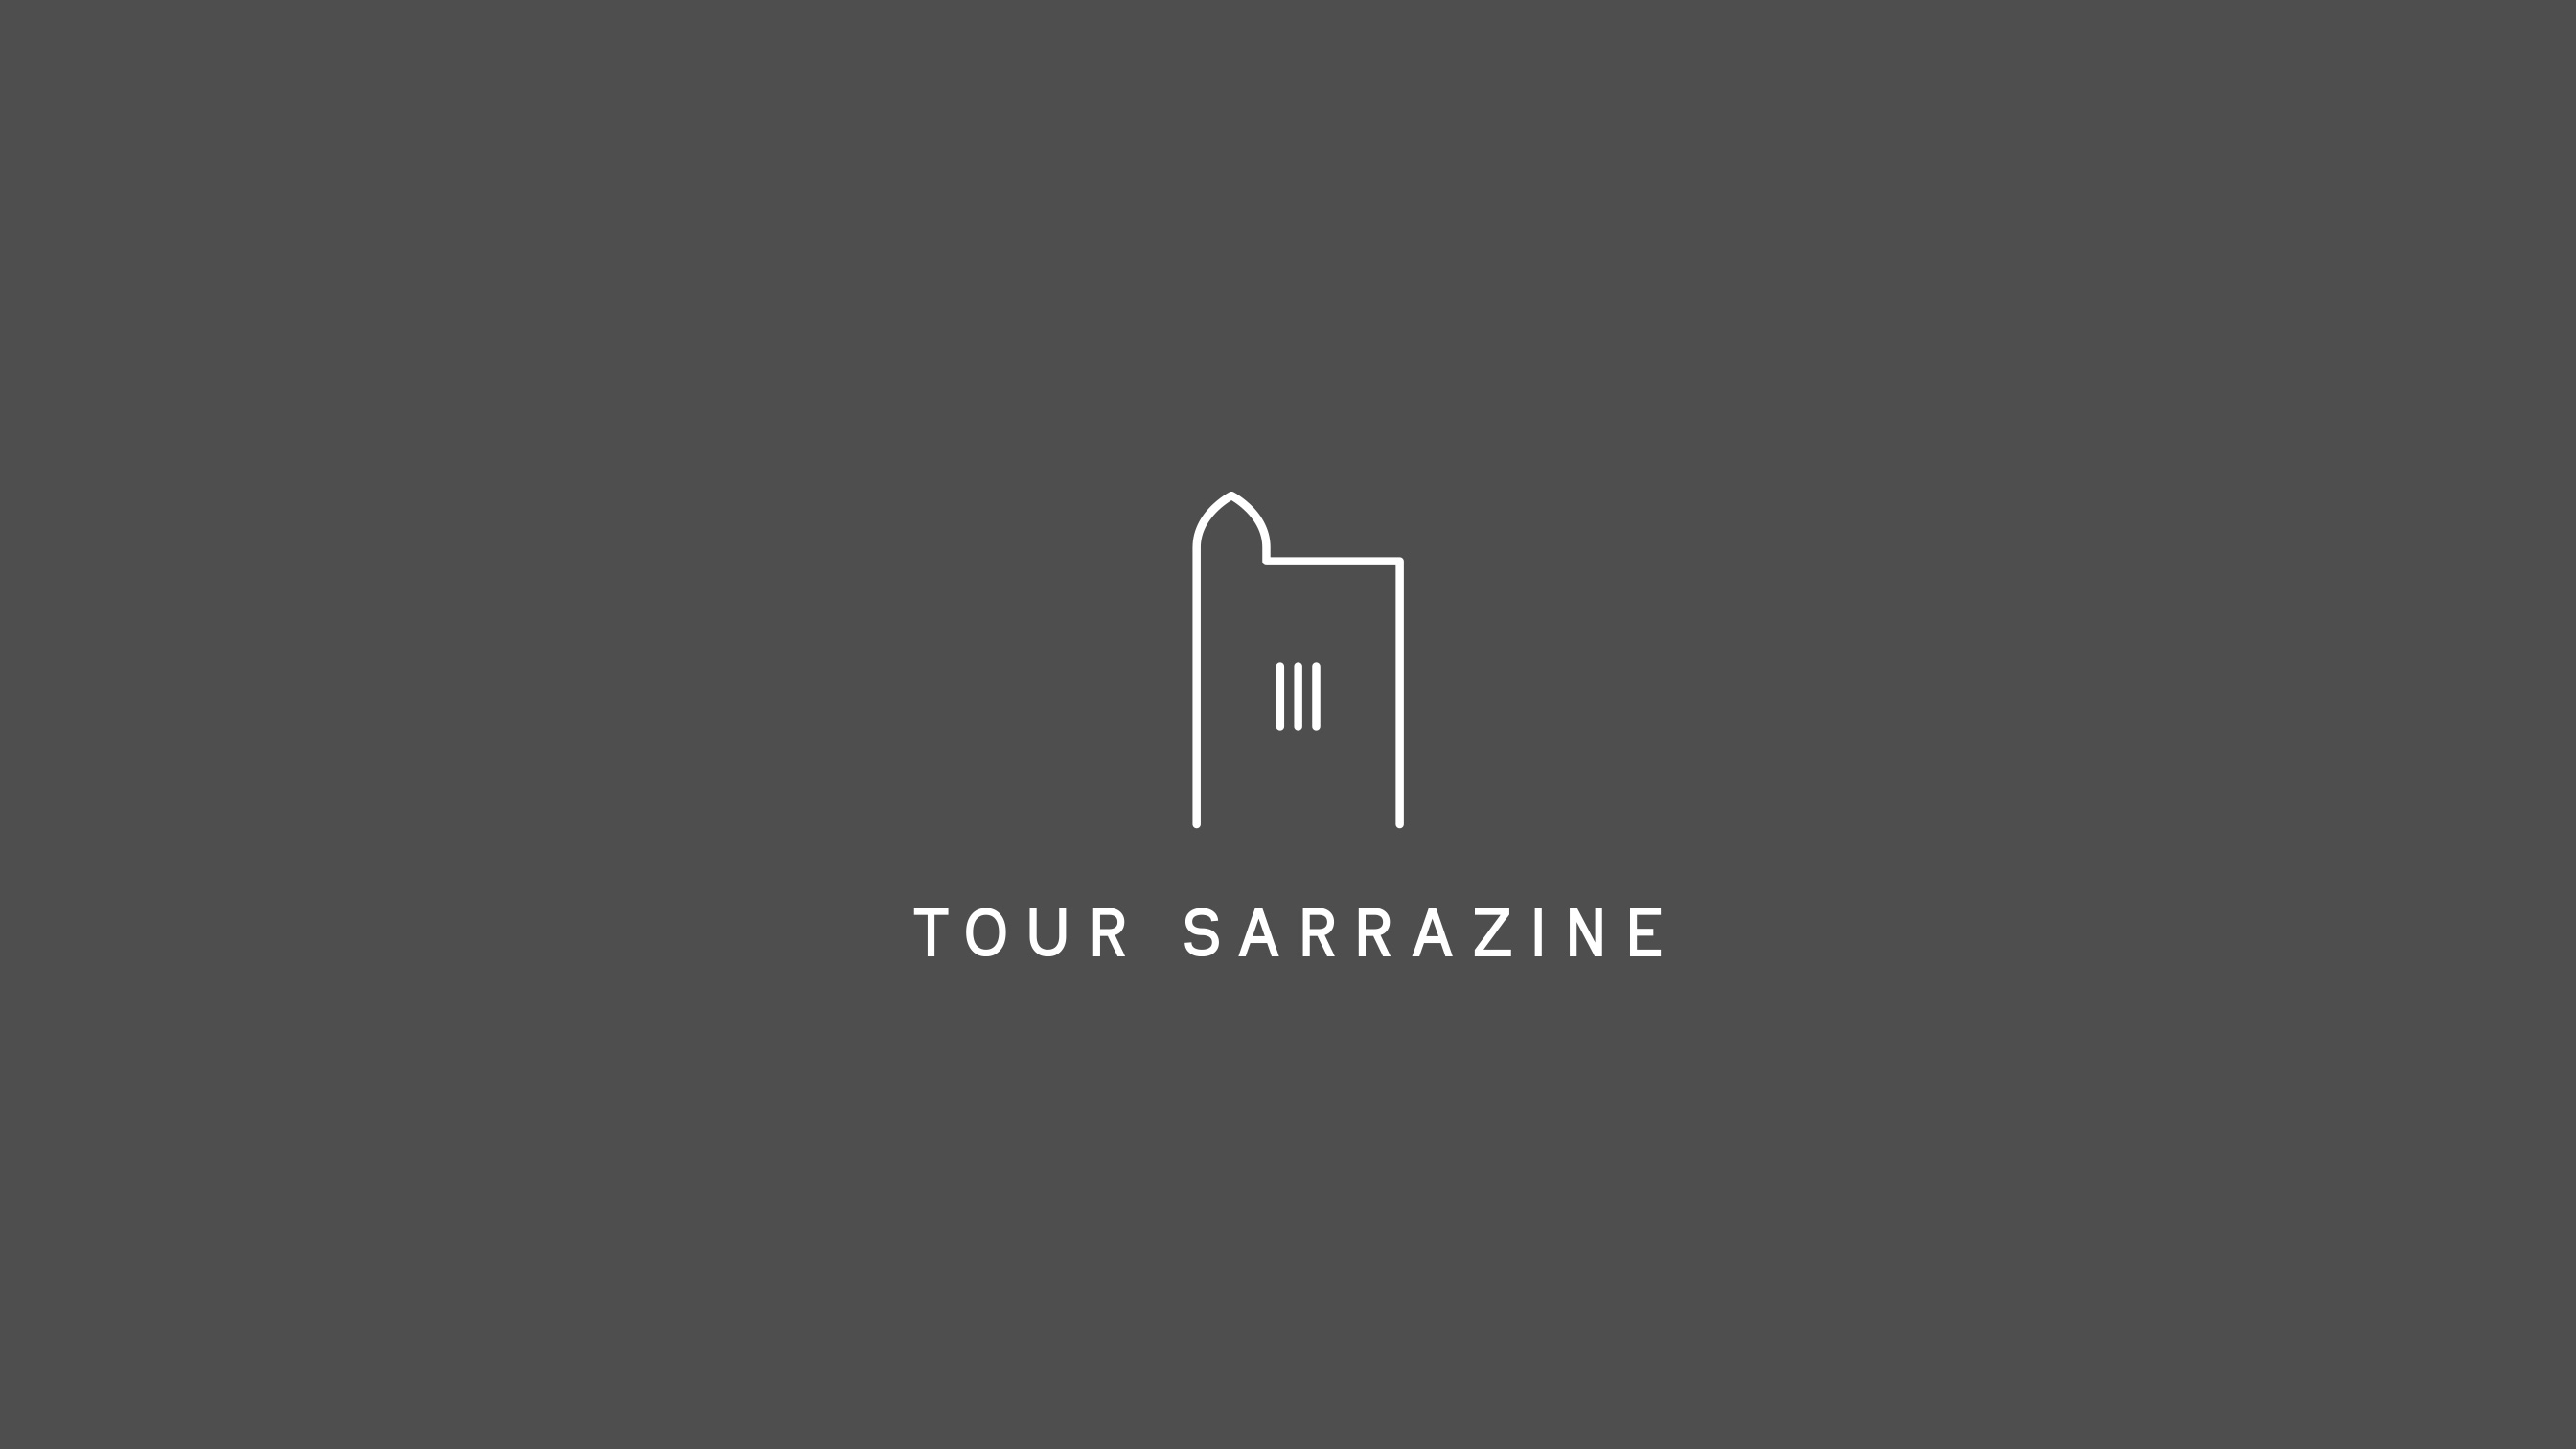 01-tour-sarrazine-pikteo-webdesign-graphic-design-freelance-paris-bruxelles-londres